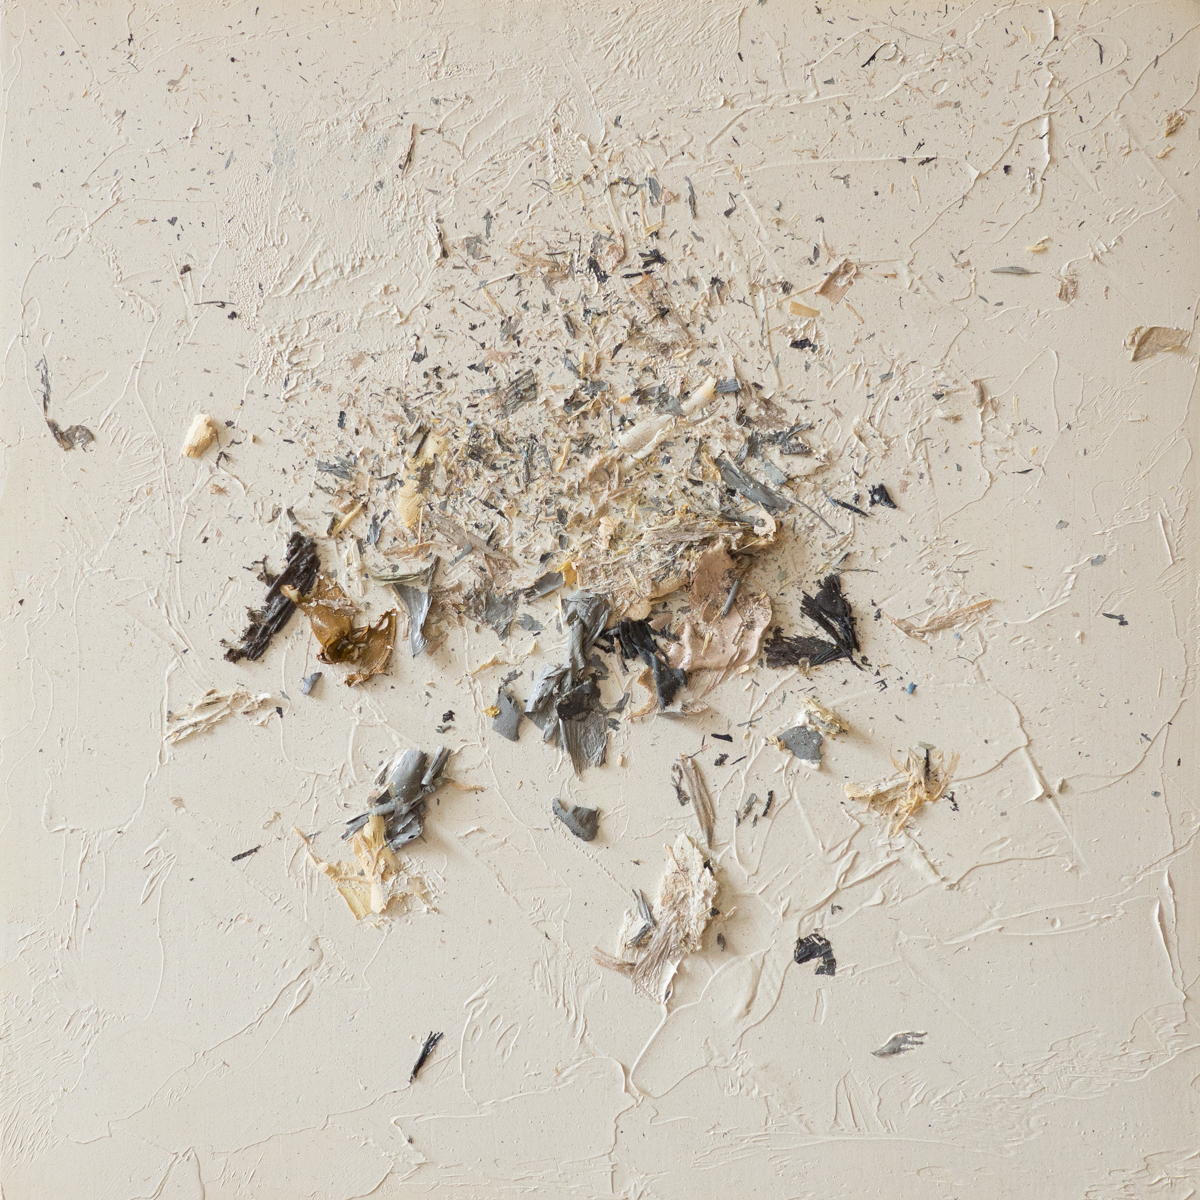 The Complexities of Emotions No.3   oils & oil paint scrapings on wood panel, 6 x 6